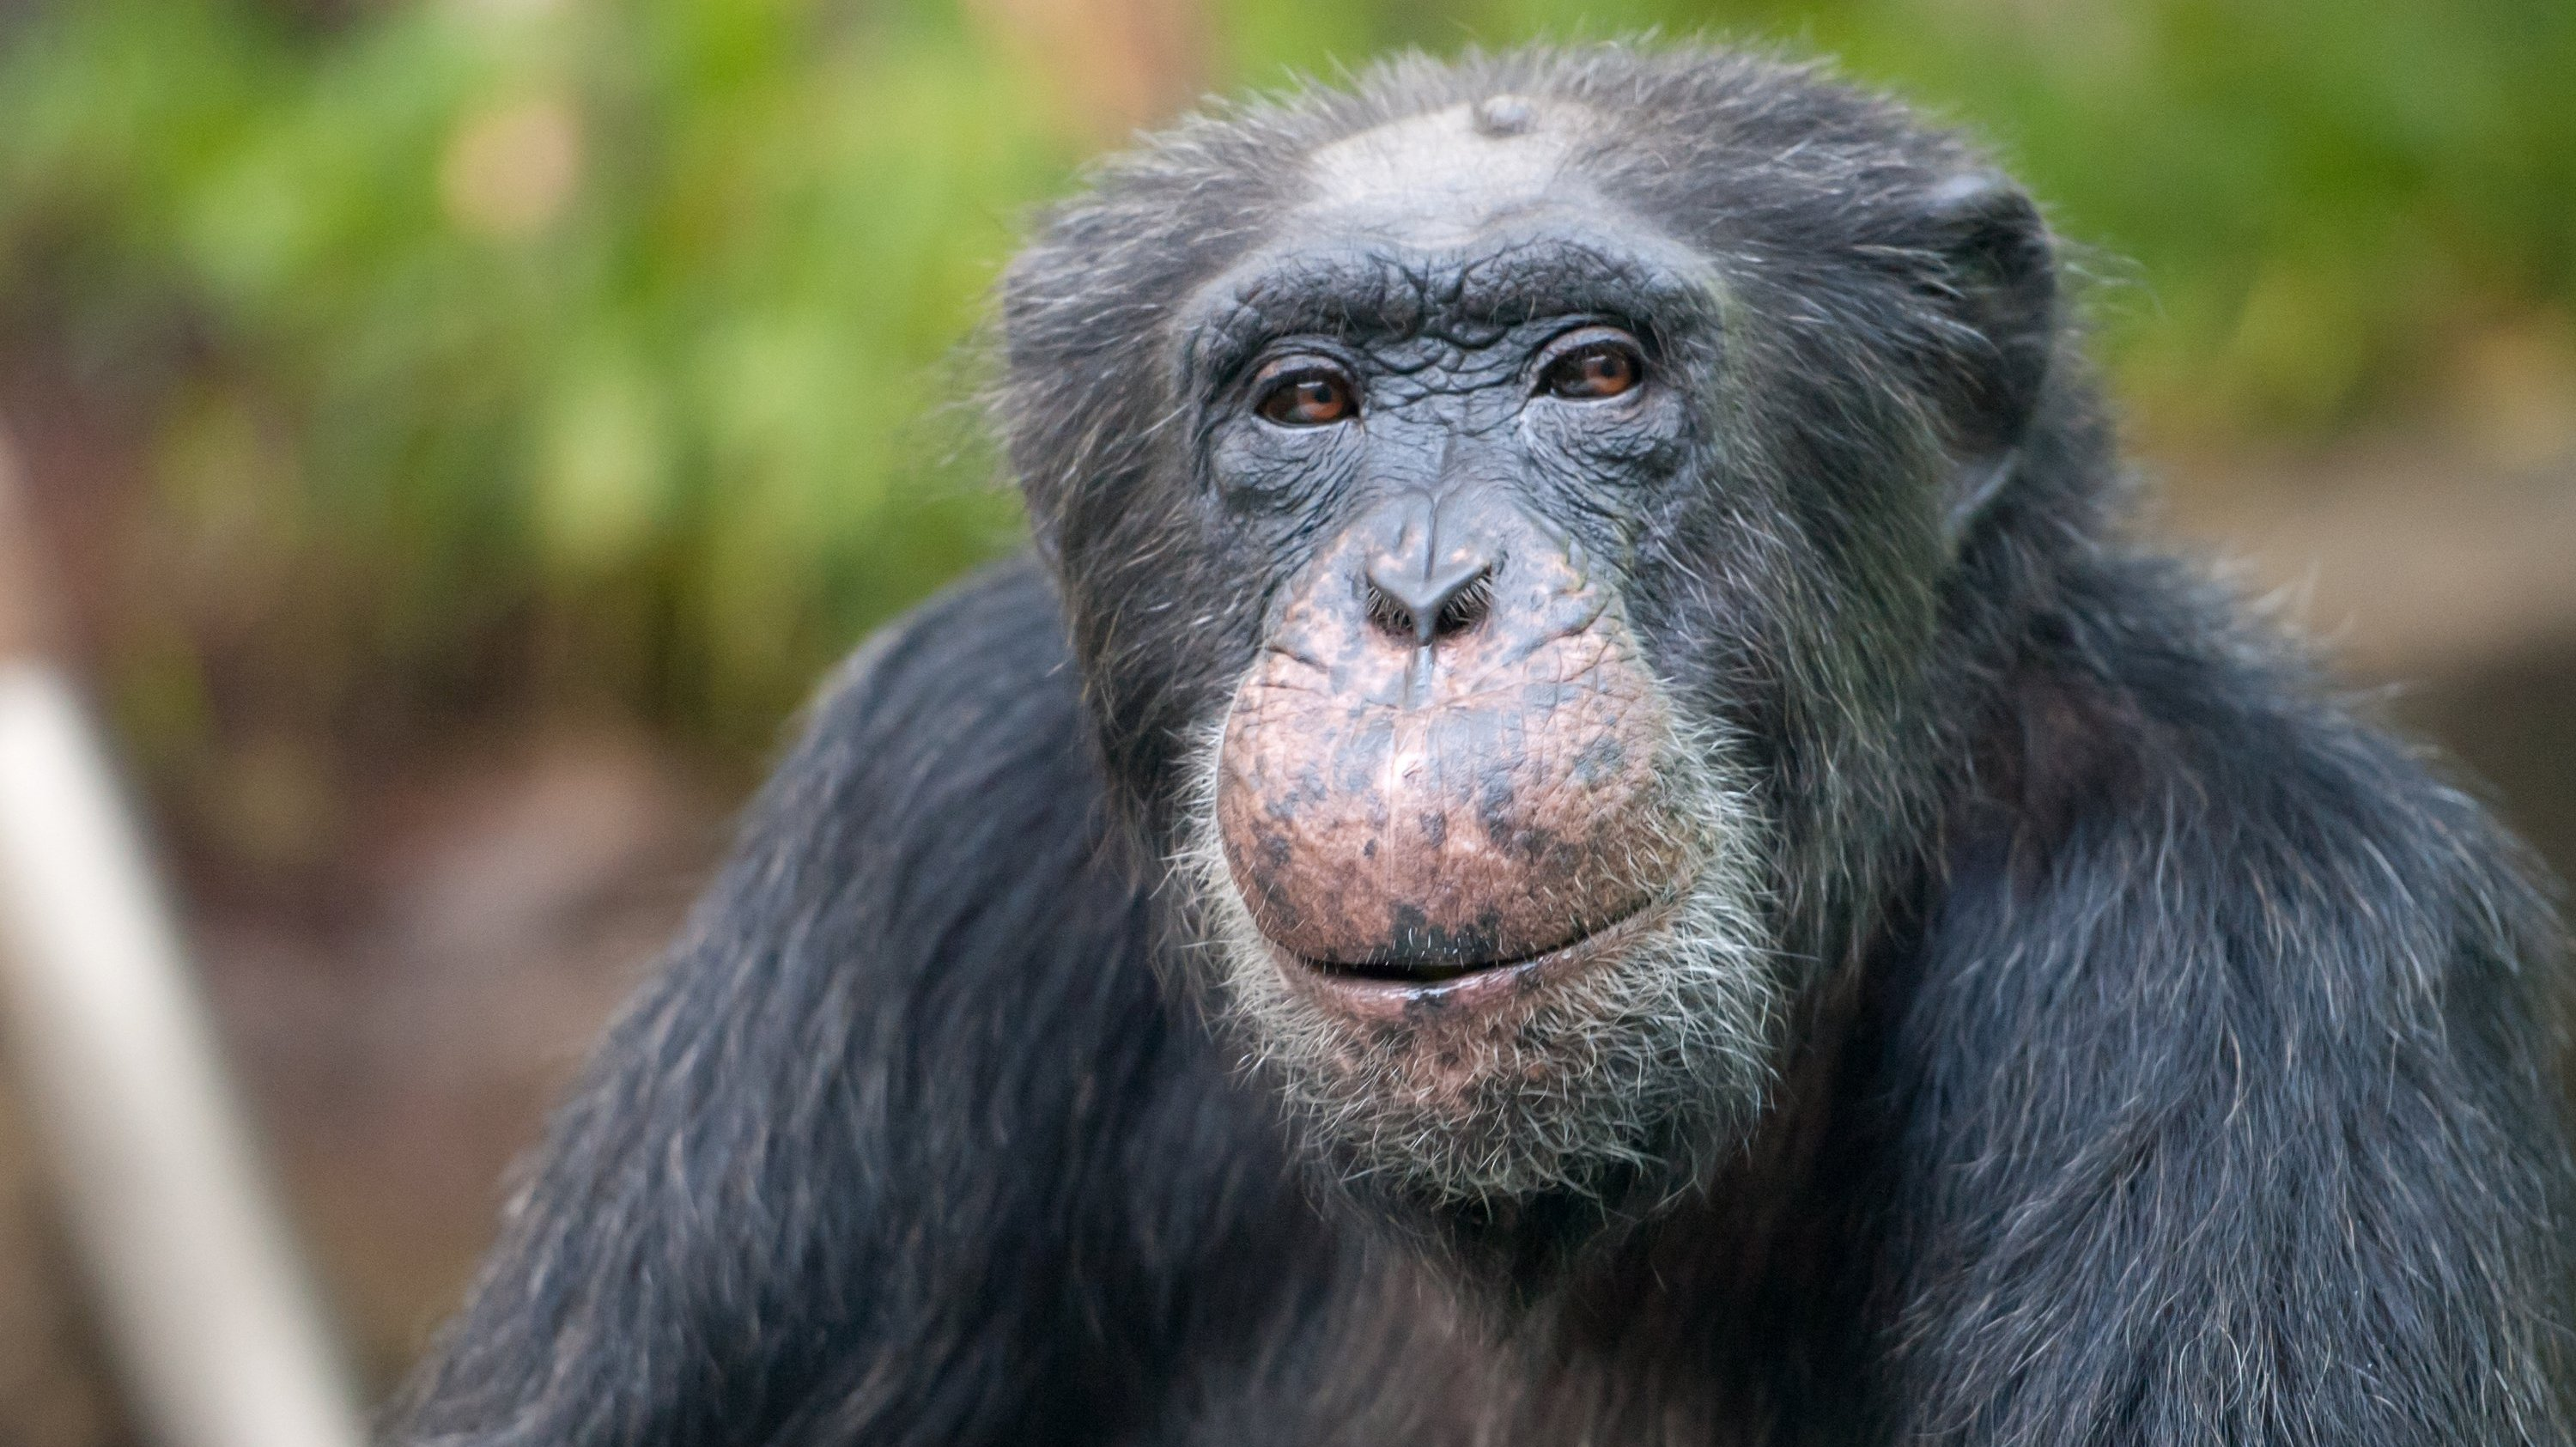 Rule Would List All Chimps As Endangered, Even Lab Animals